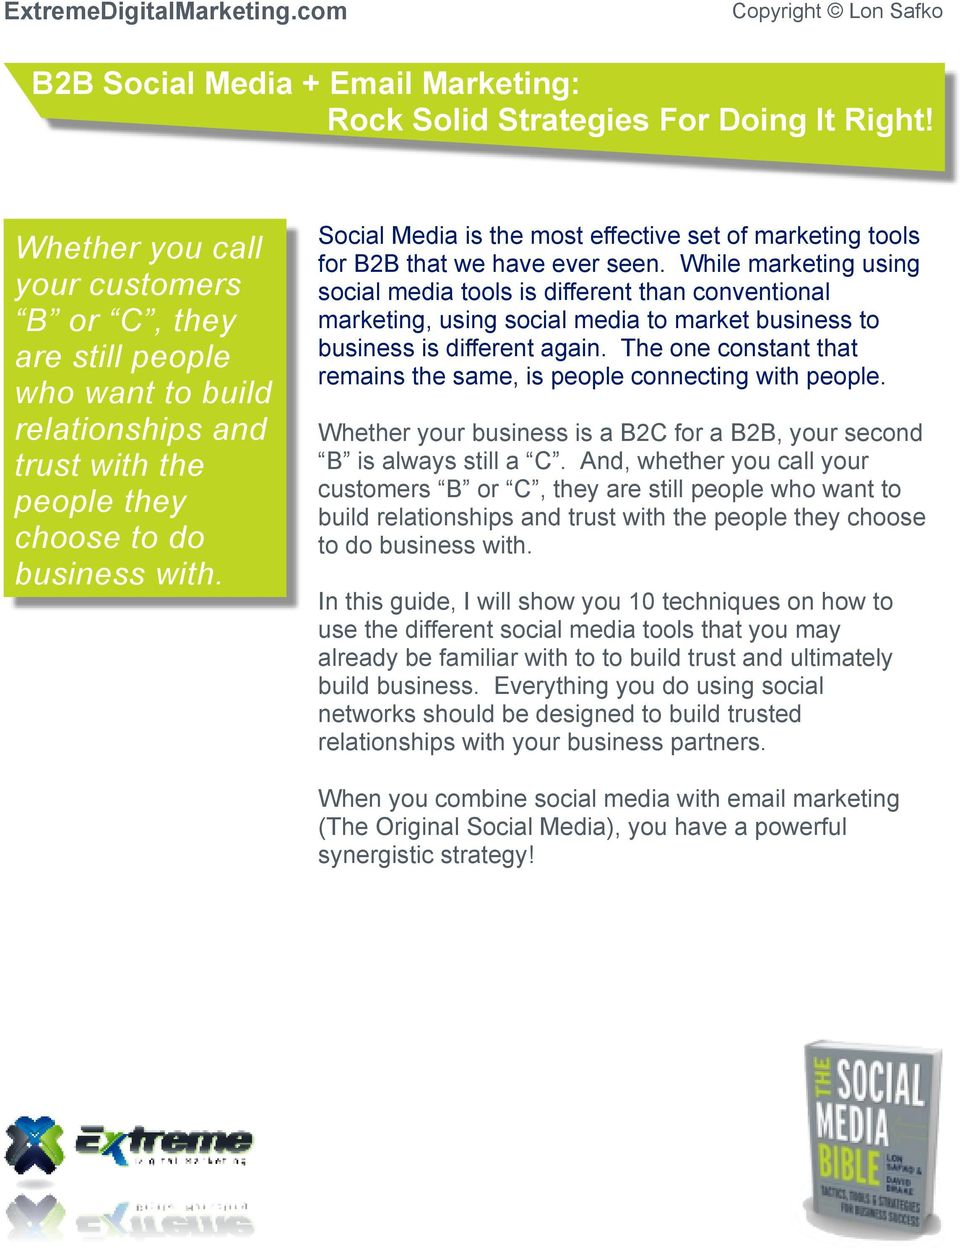 Social Media is the most effective set of marketing tools for B2B that we have ever seen.